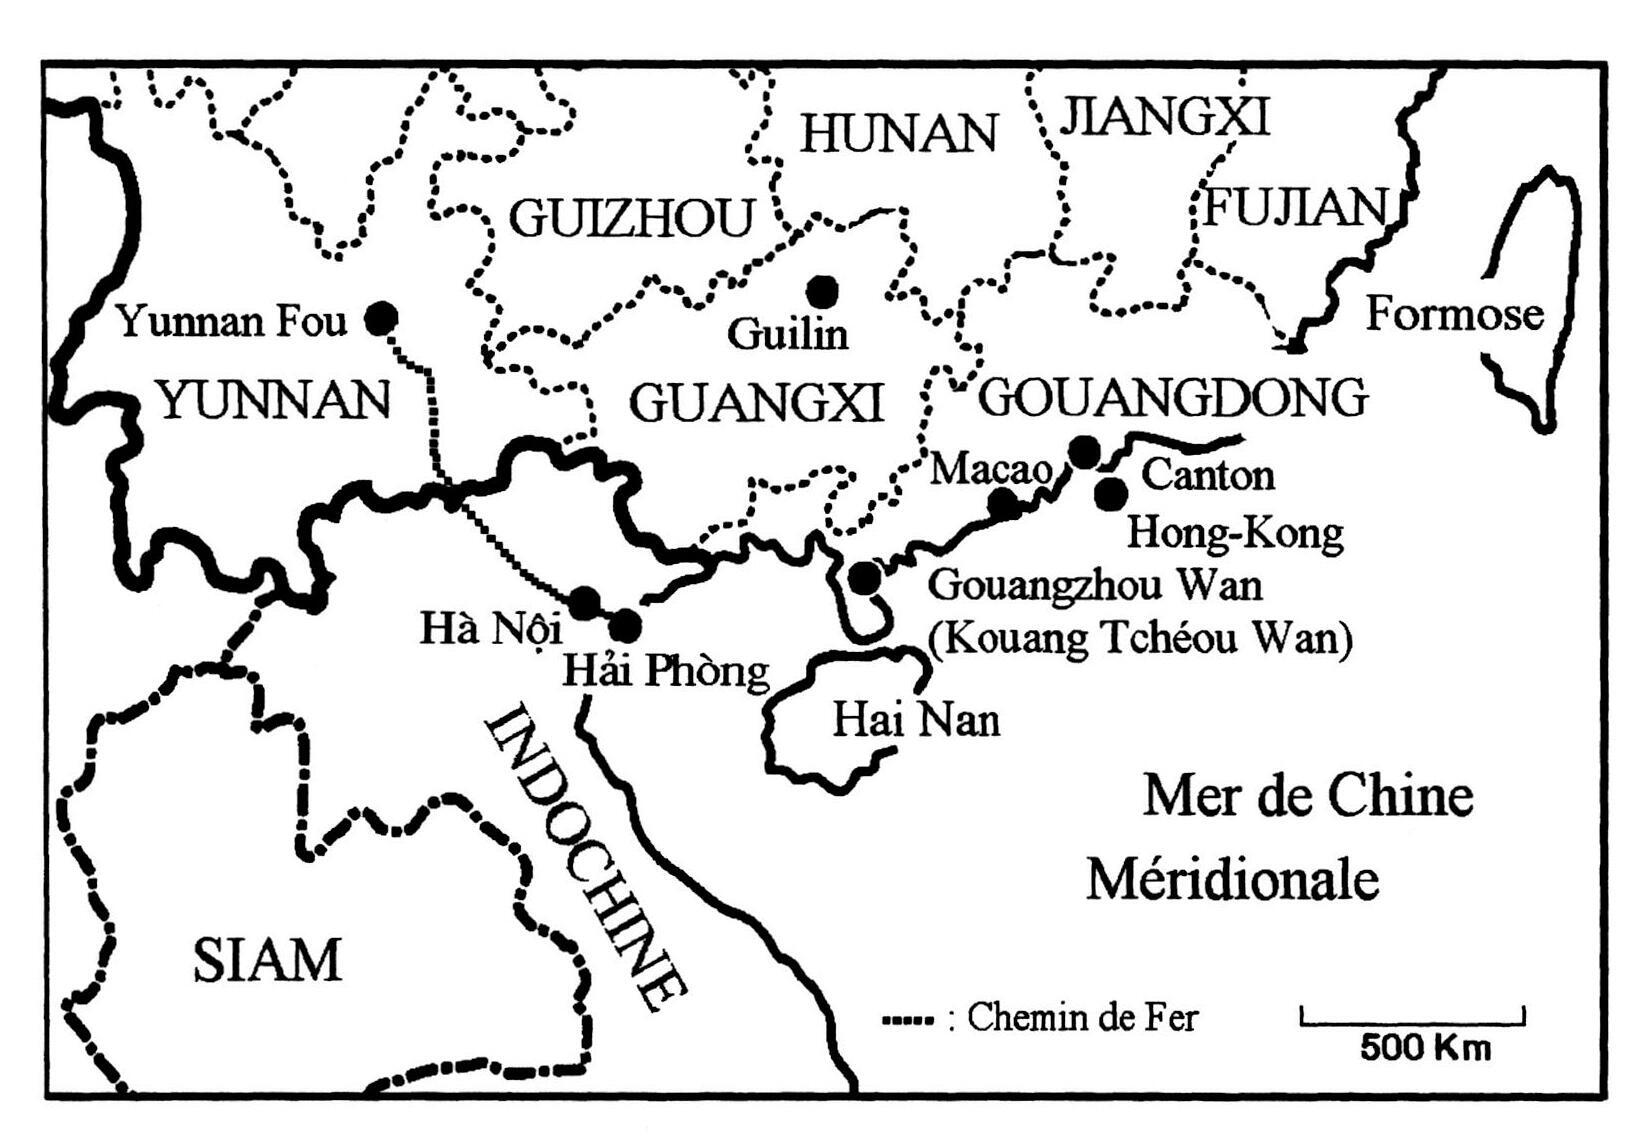 French Indochina could have been overrun by Mao Zedong's People's Liberation Army after he had spoken with Vietnamese leader Ho Chi-minh about possible support. But Stalin was against it.